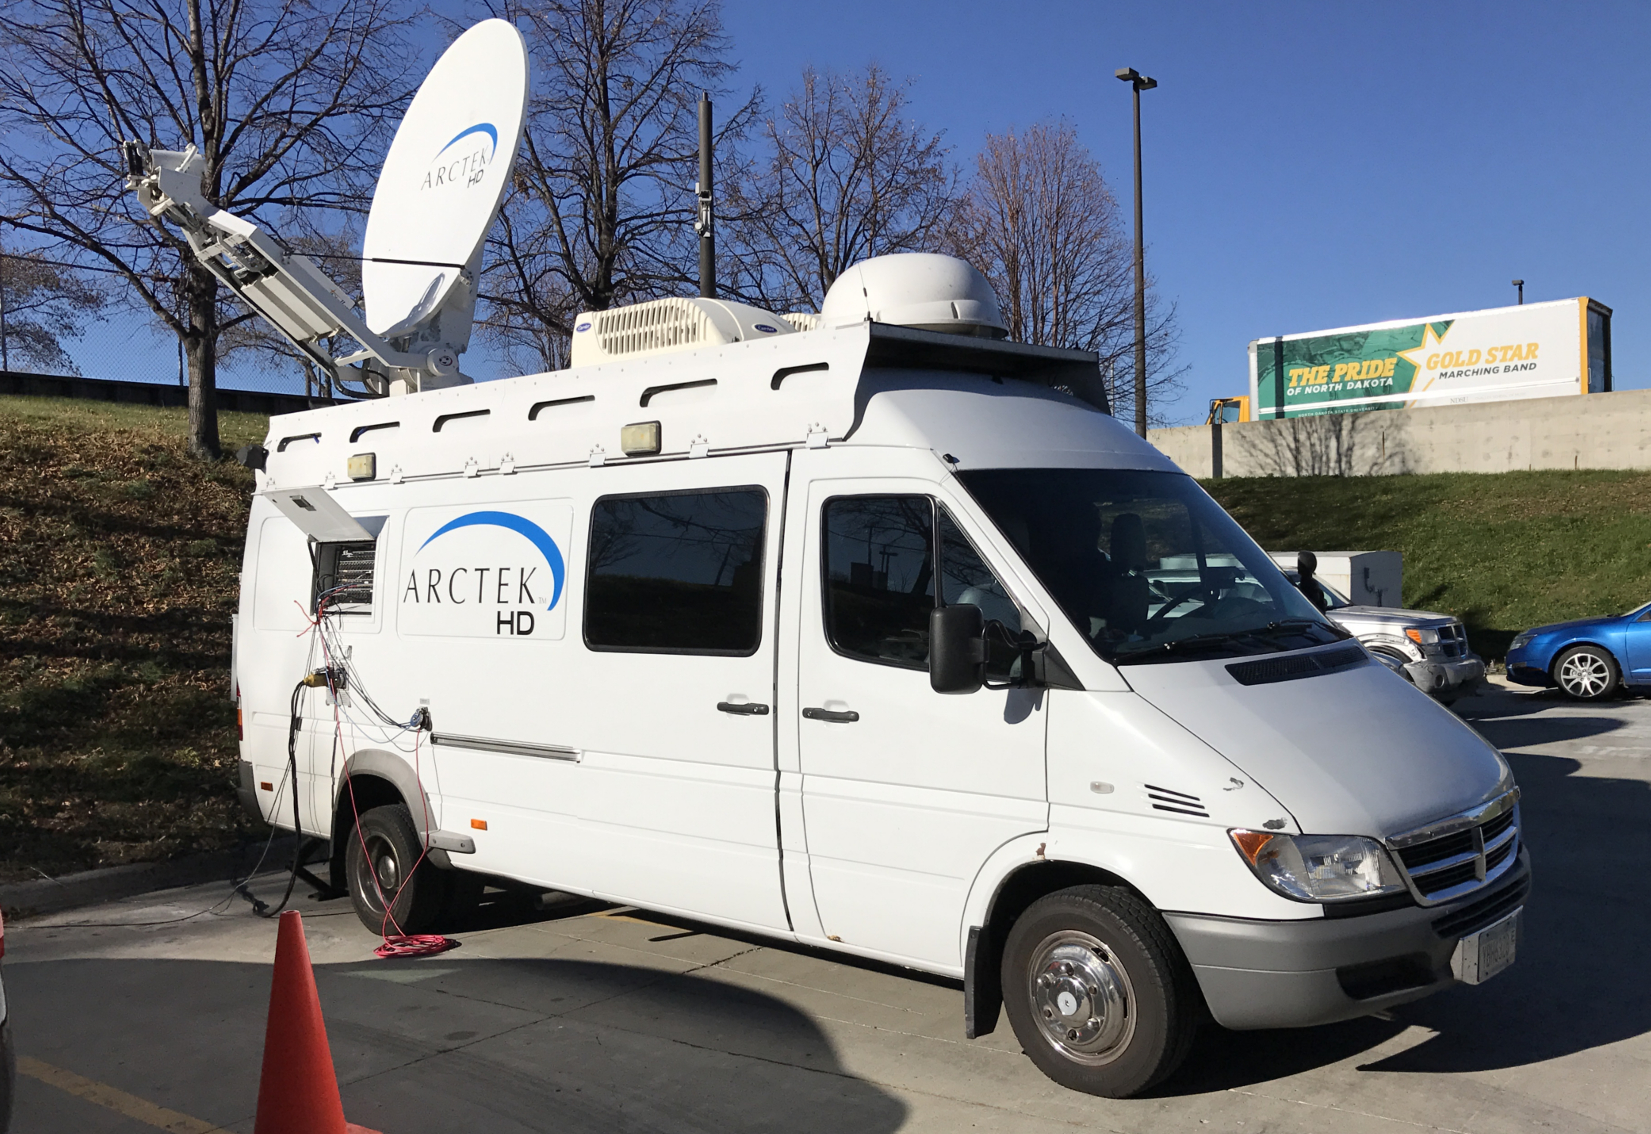 ARCTEK Satellite Trucks